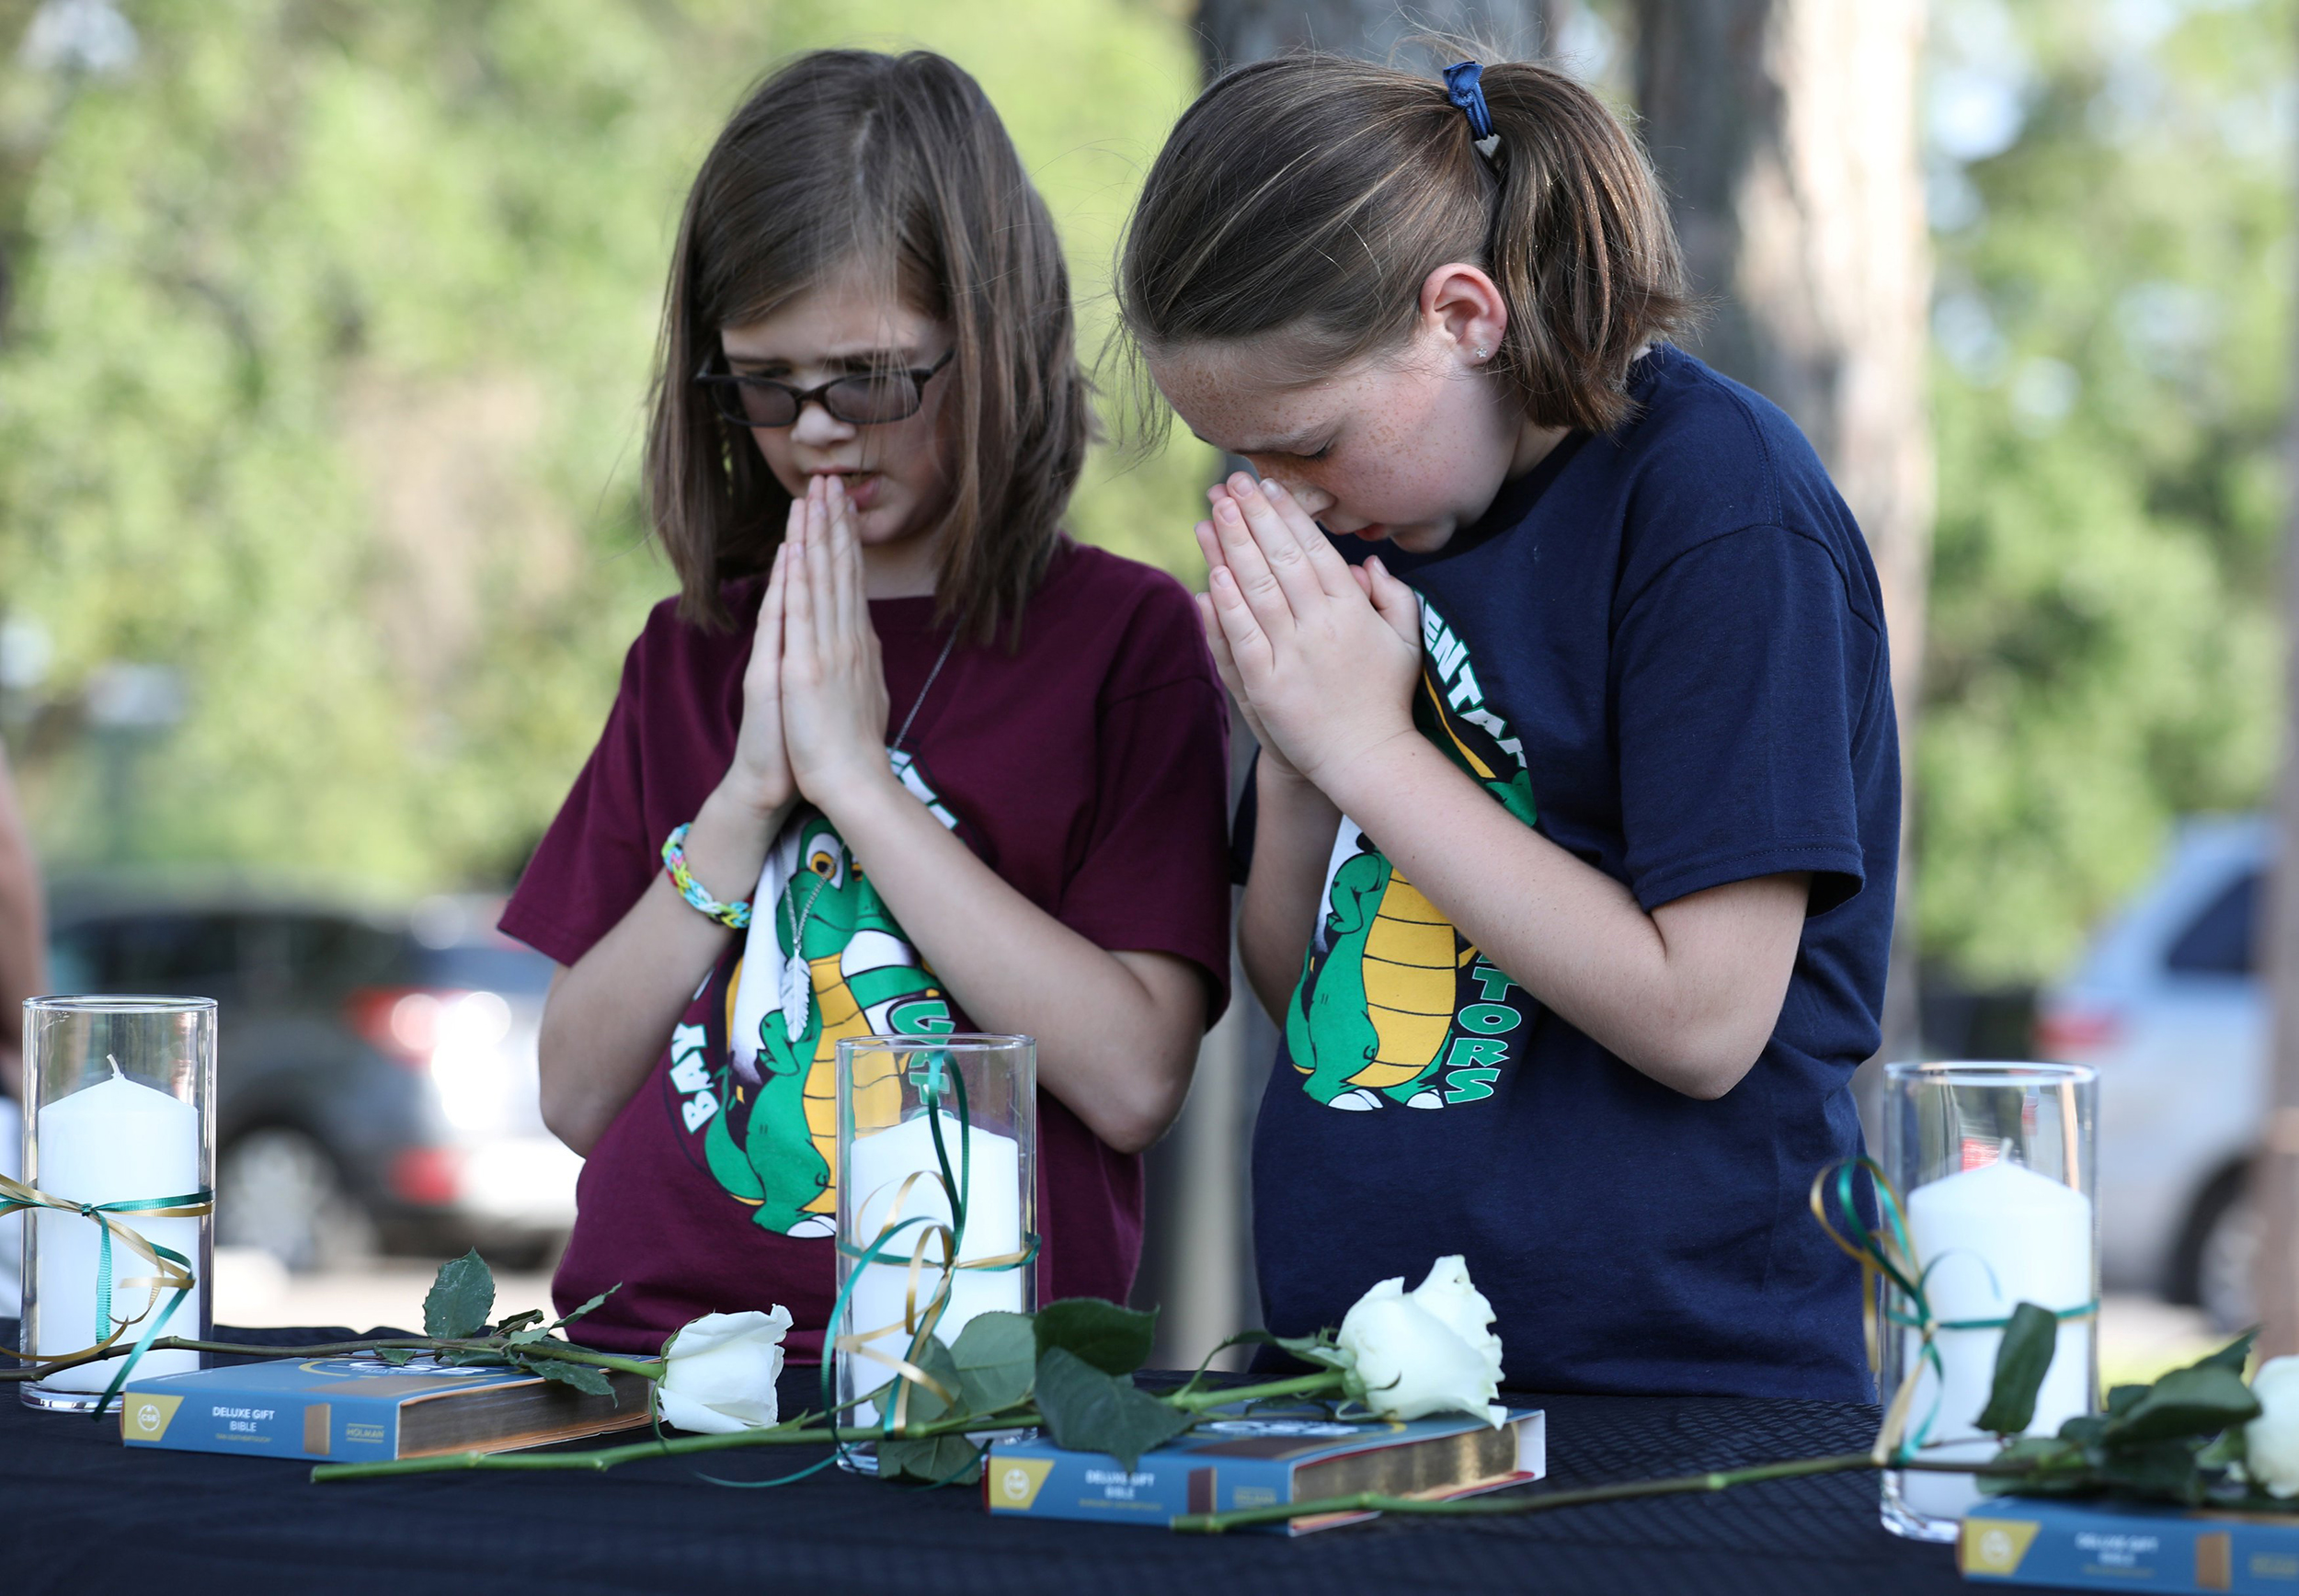 Exchange student, teacher with 'lust for life' among 10 killed in Texas school shooting